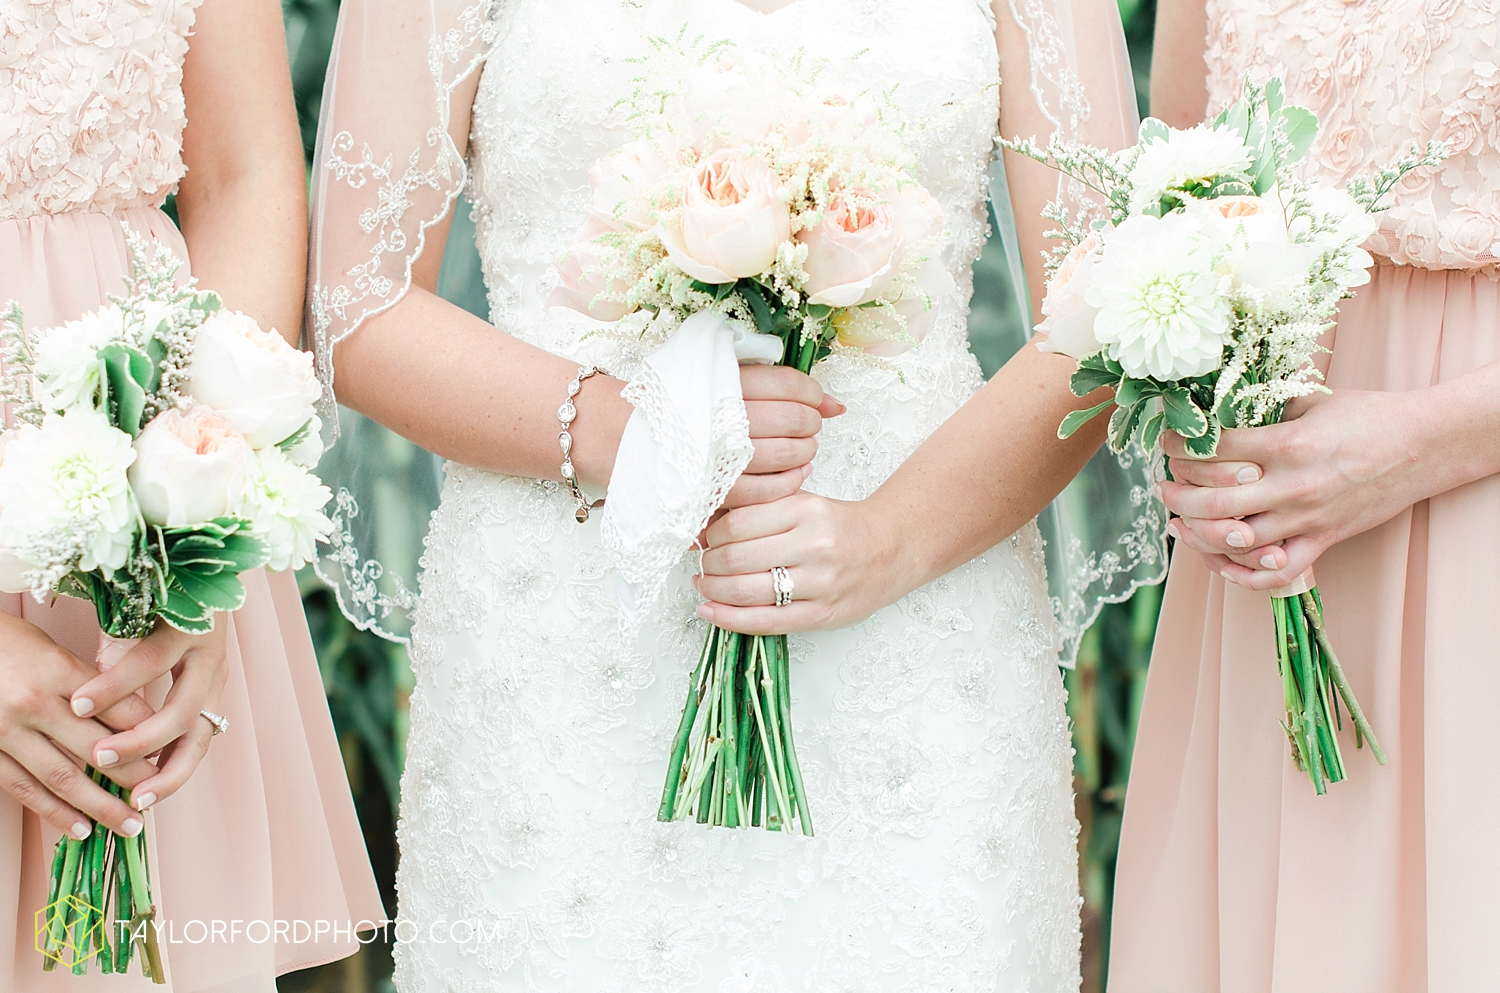 midwest_wedding_photography_taylor_ford_0500.jpg